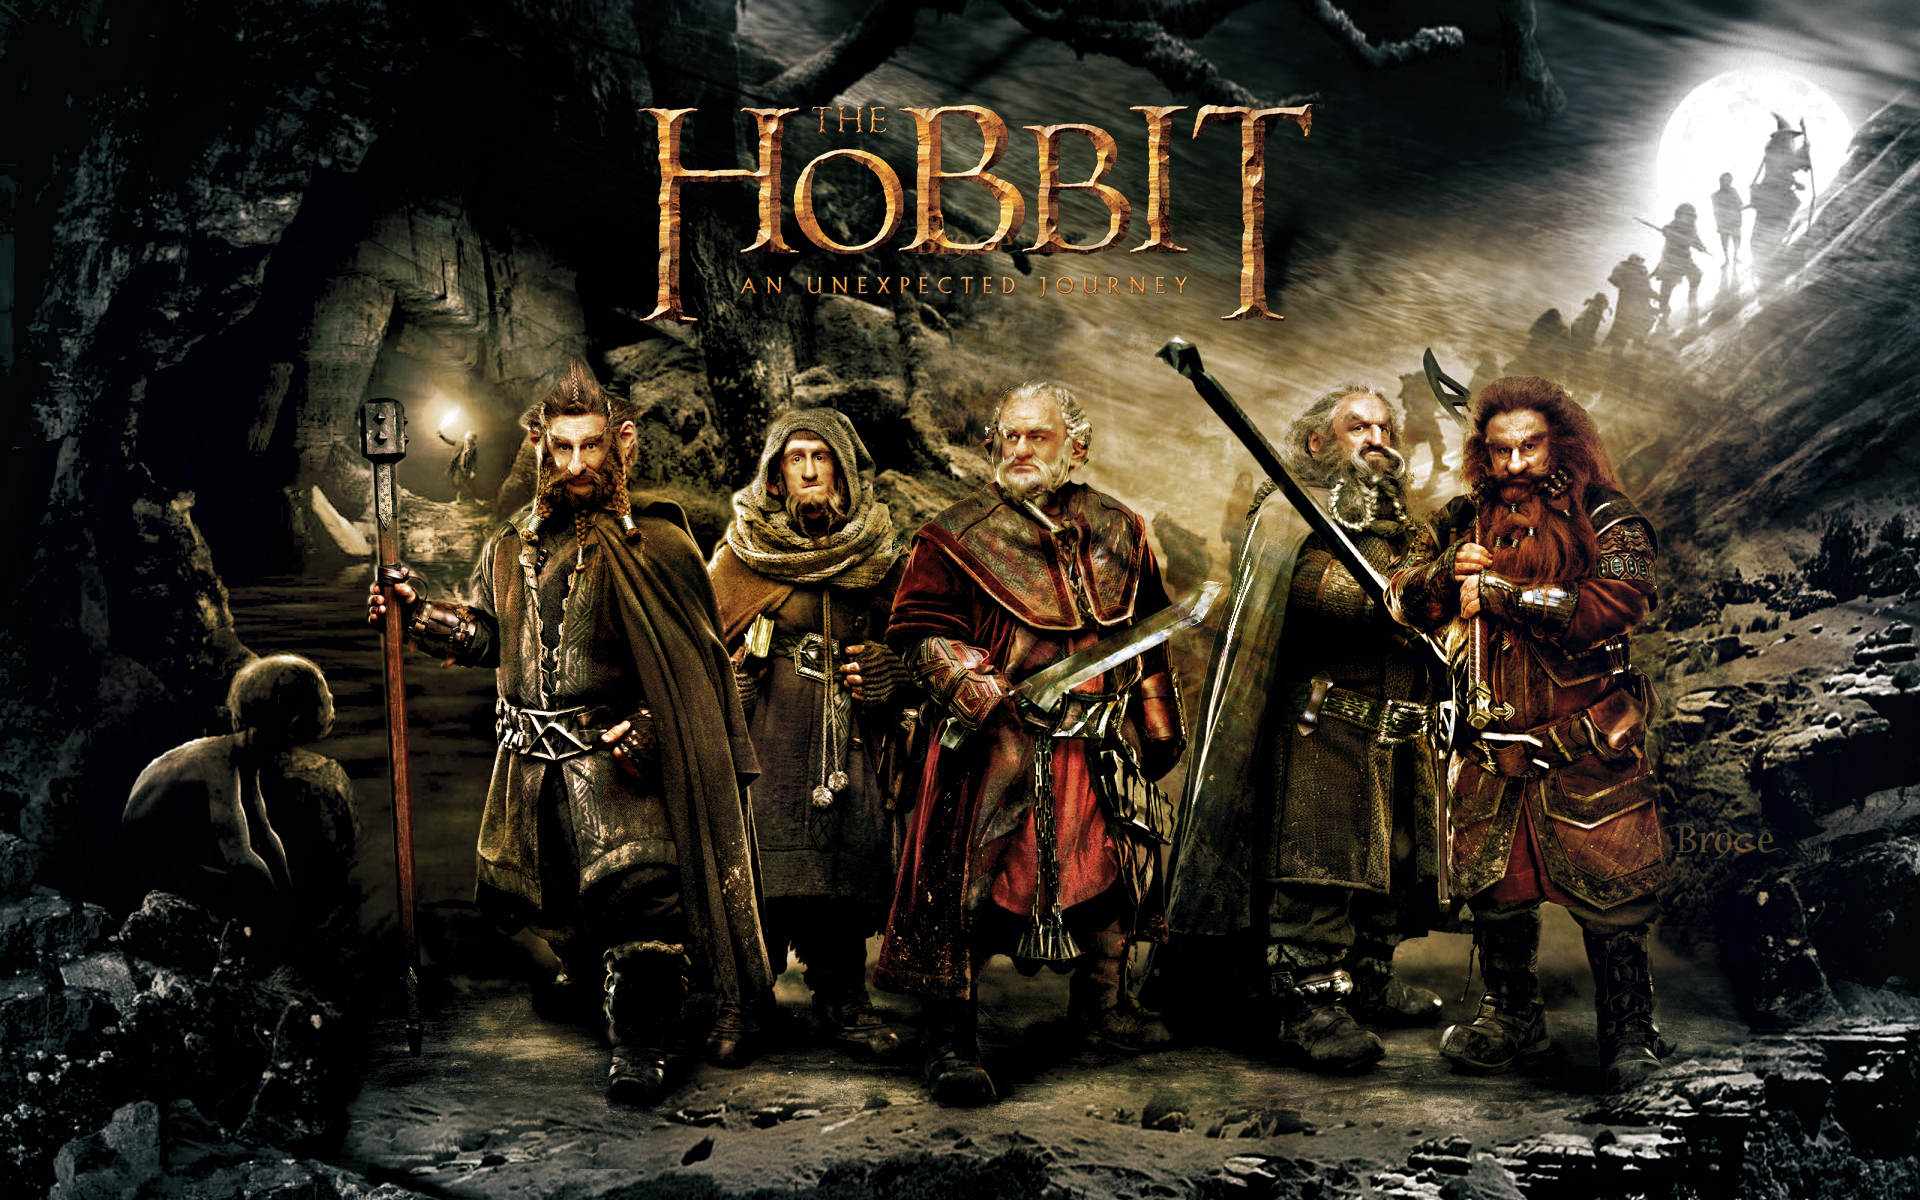 2012 The Hobbit An Unexpected Journey Wallpapers HD Wallpapers 1920x1200